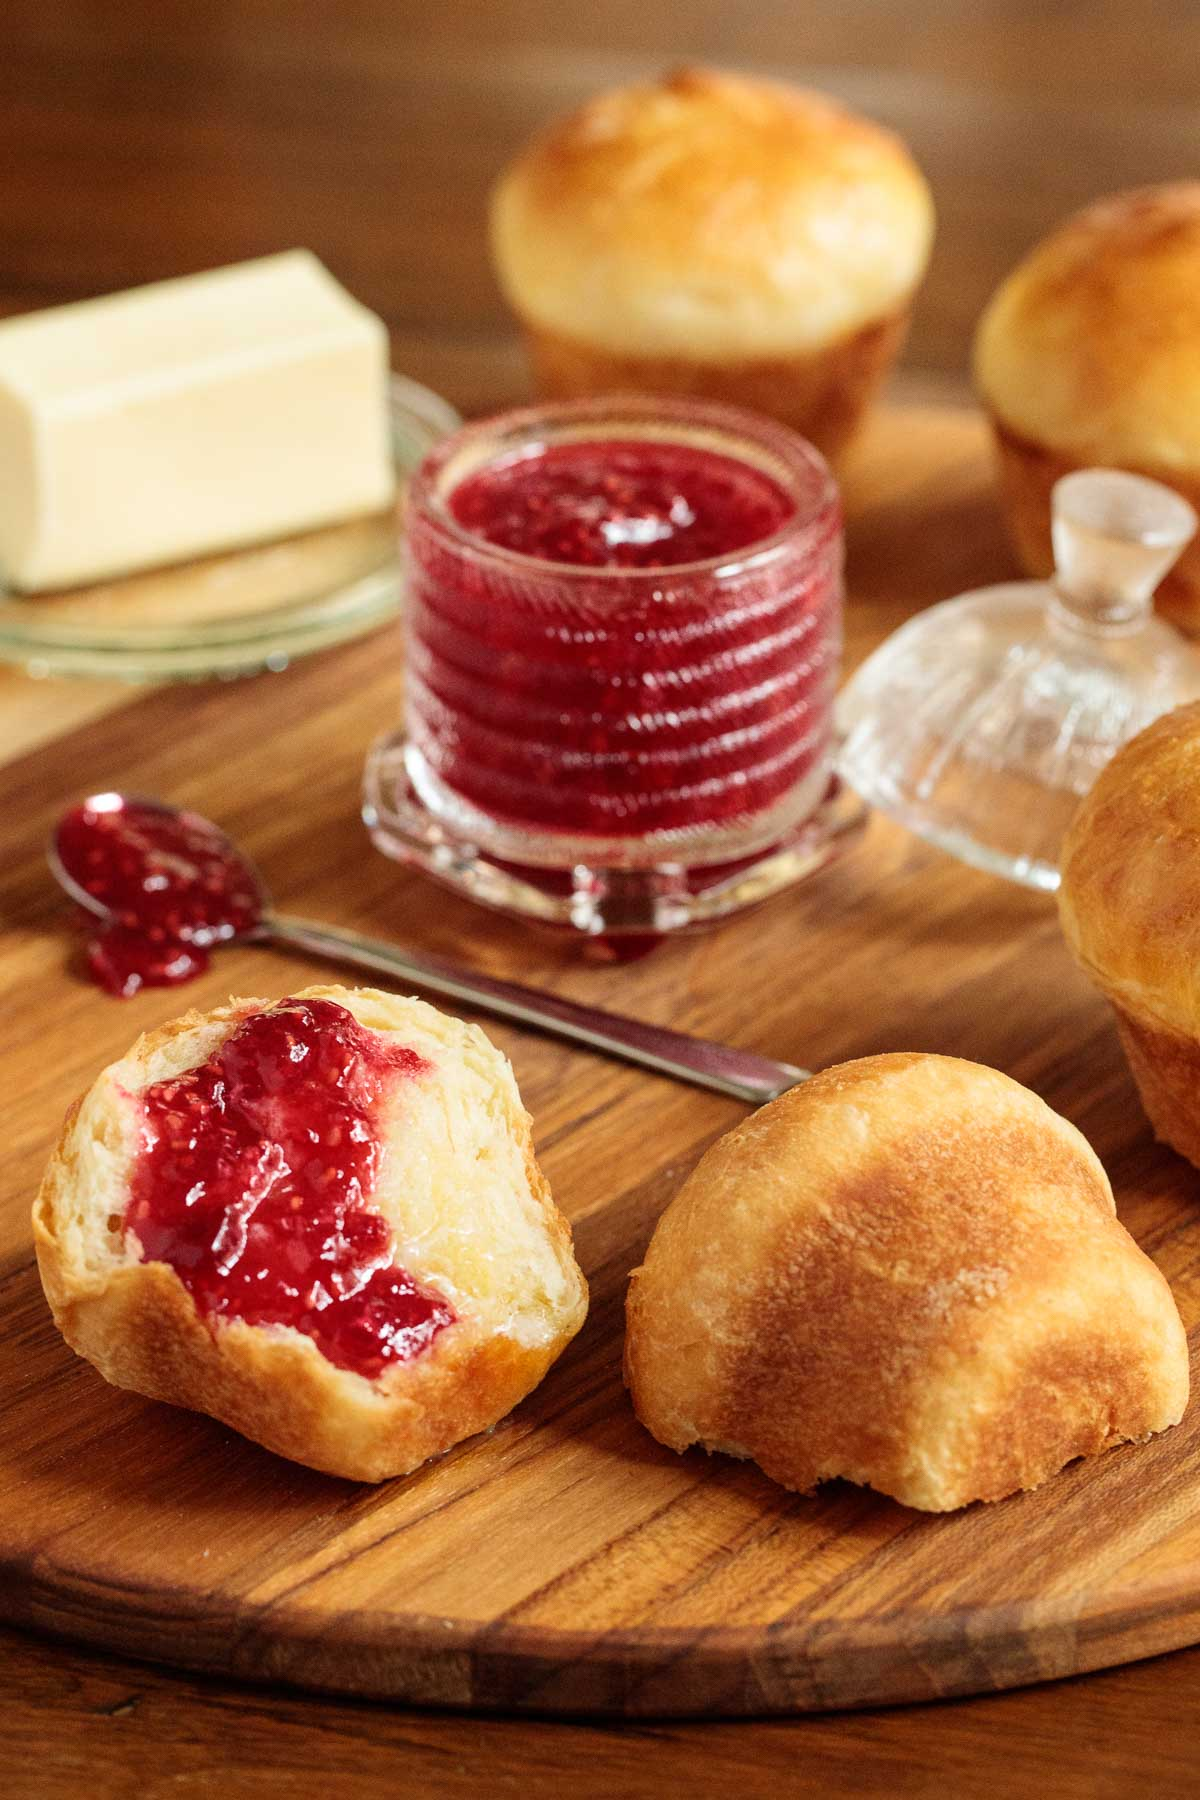 Vertical photo of Easy Brioche Dinner Rolls on a wood platter with raspberry jam on the rolls.